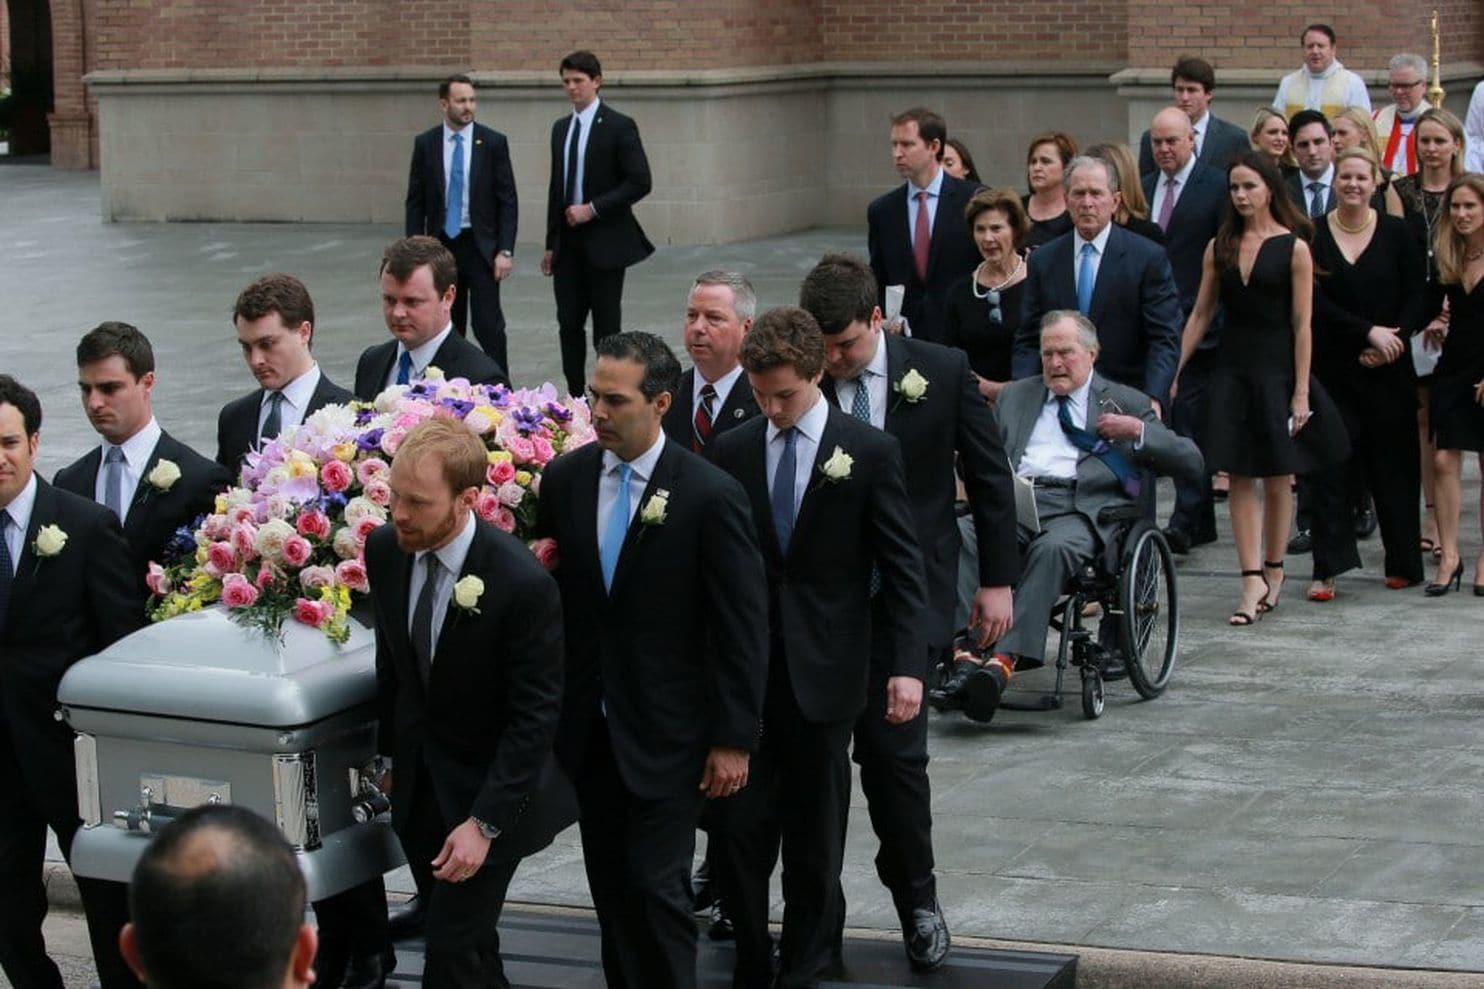 Barbara Bush's eight grandsons carry her casket out of St. Martin's Episcopal Church in Houston on Saturday. In 1990, the former First Lady was inducted into SAF's American Academy of Floriculture.